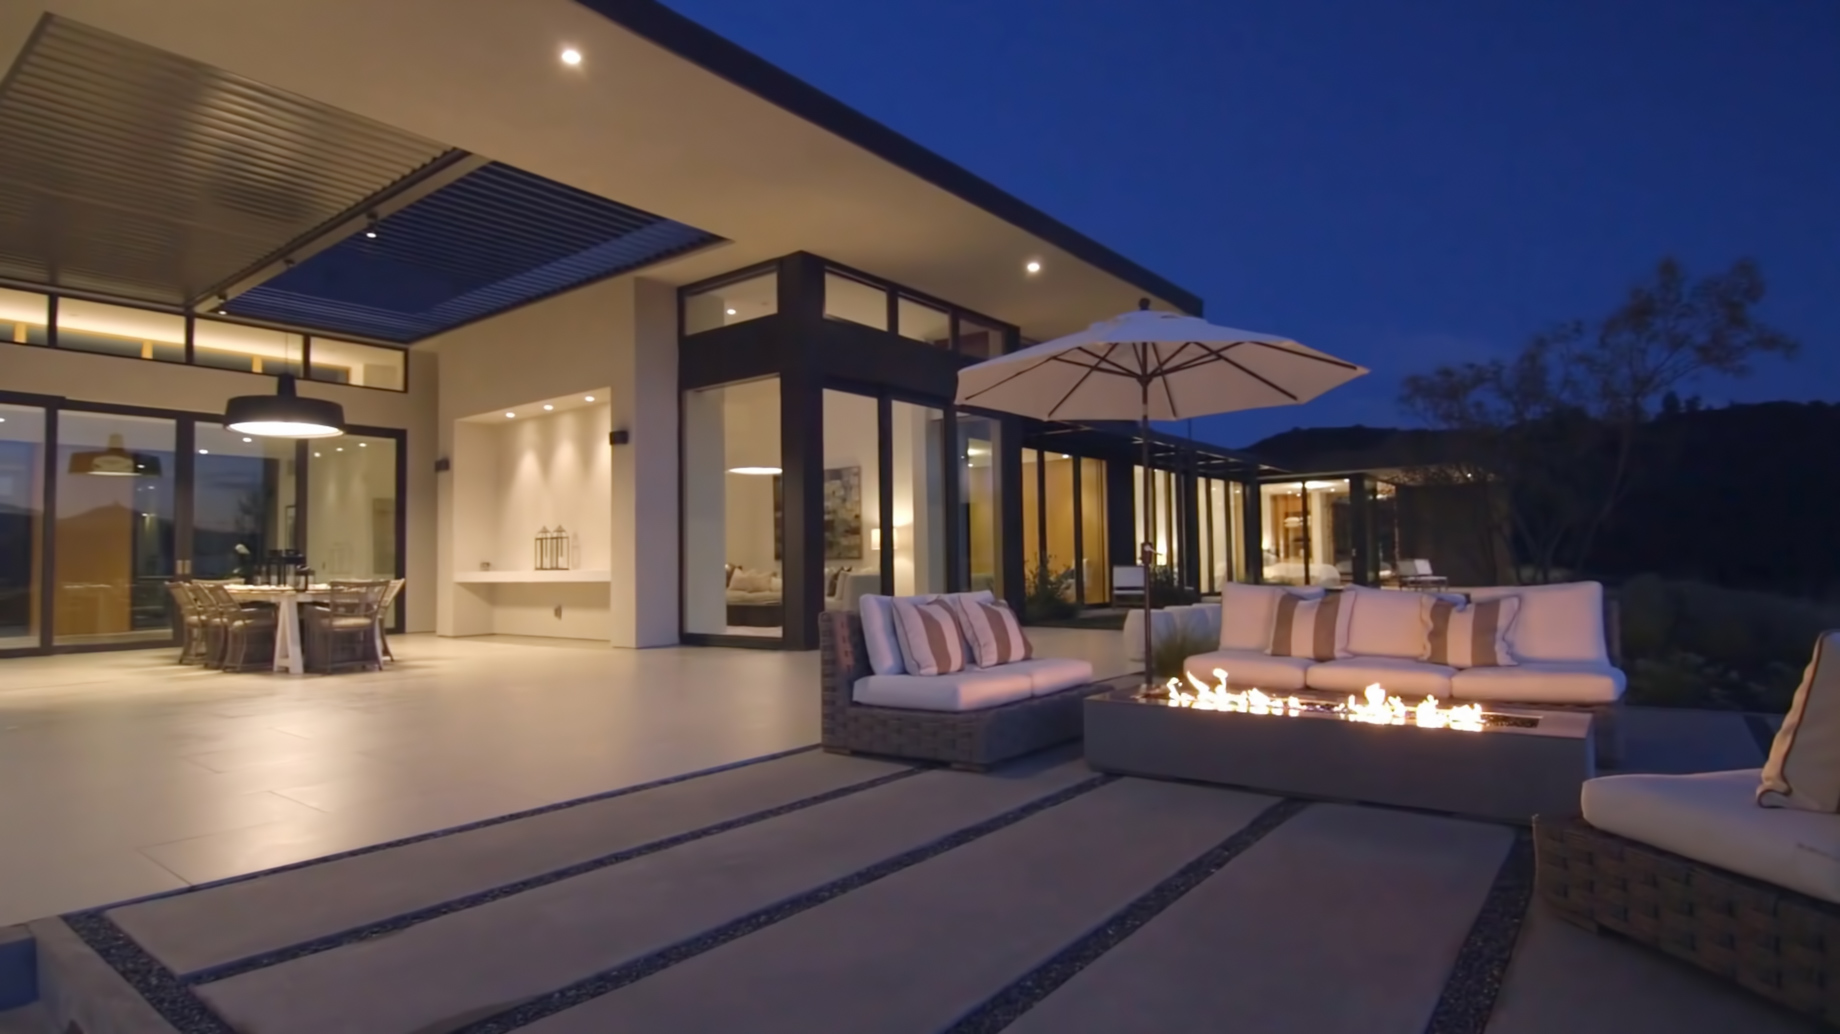 Napa Valley Luxury Residence - Silverado Trail, Napa, CA, USA